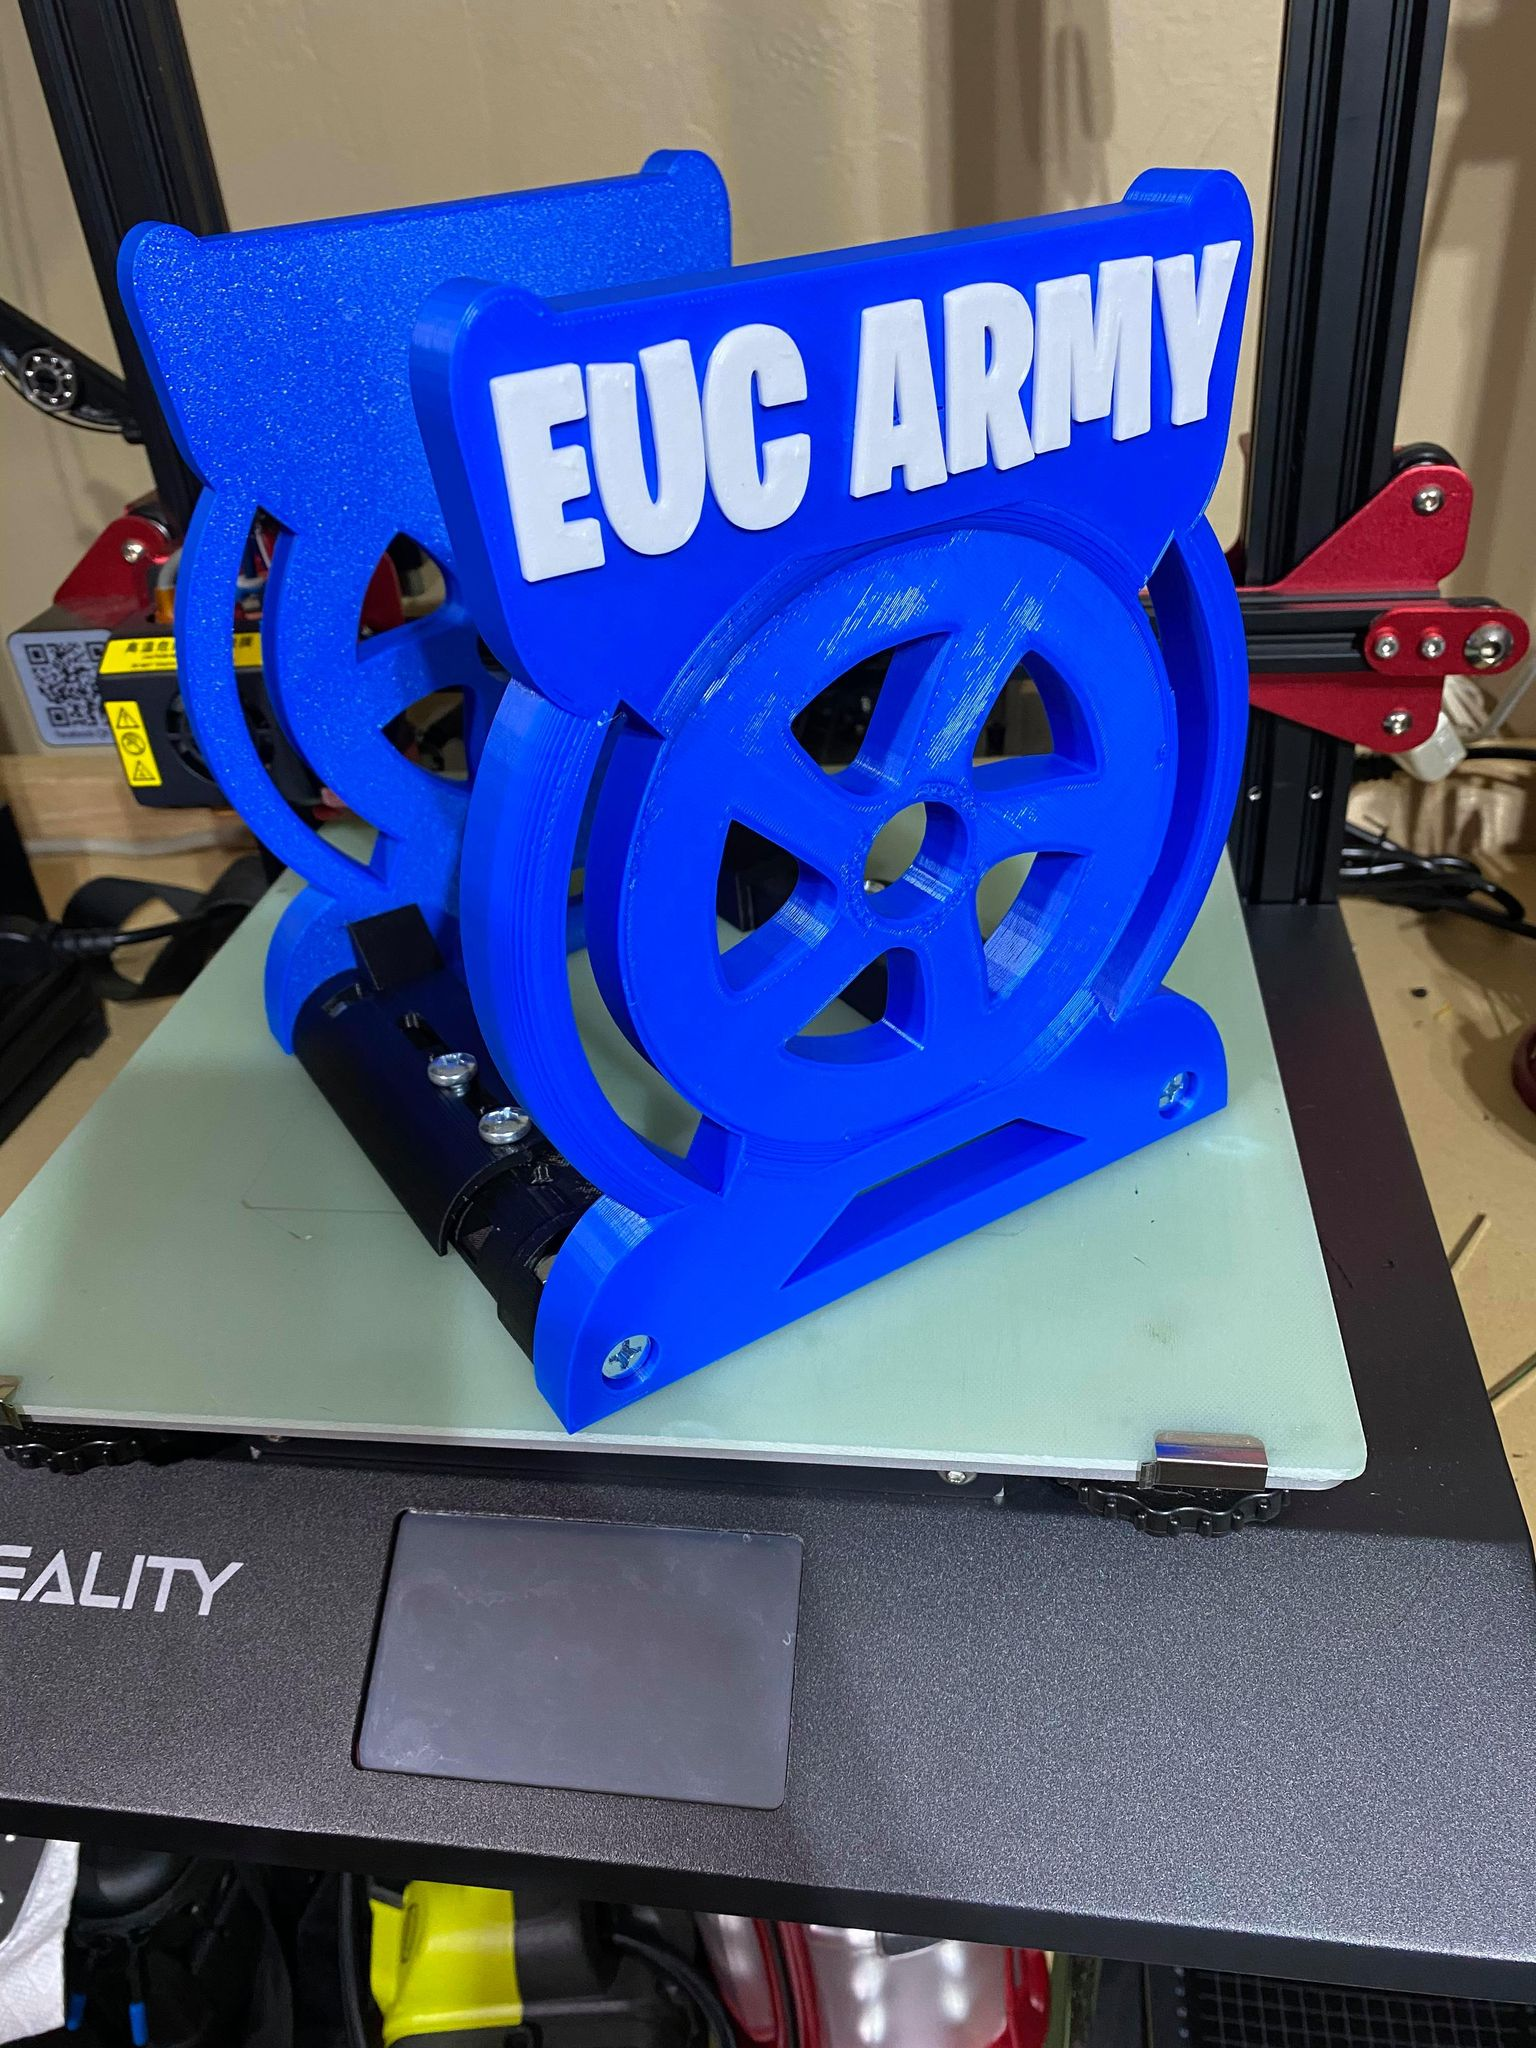 EUC Stand 3.9 Premium Tall Boy Adjustable EXTREME - Fits ALL wheels